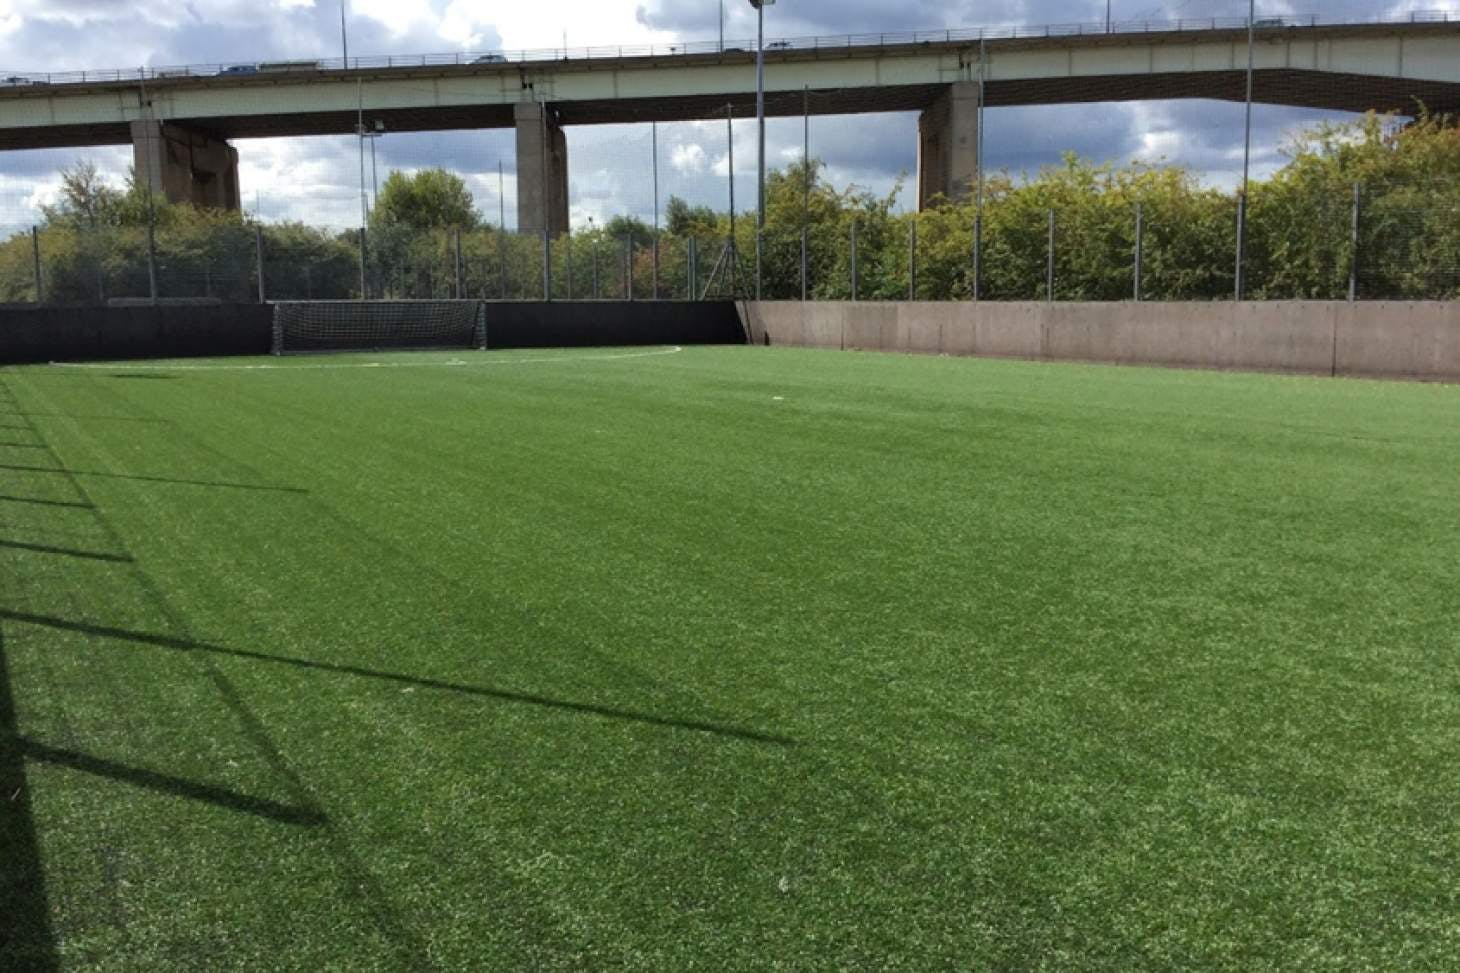 Powerleague Glasgow 5 a side | 3G Astroturf football pitch